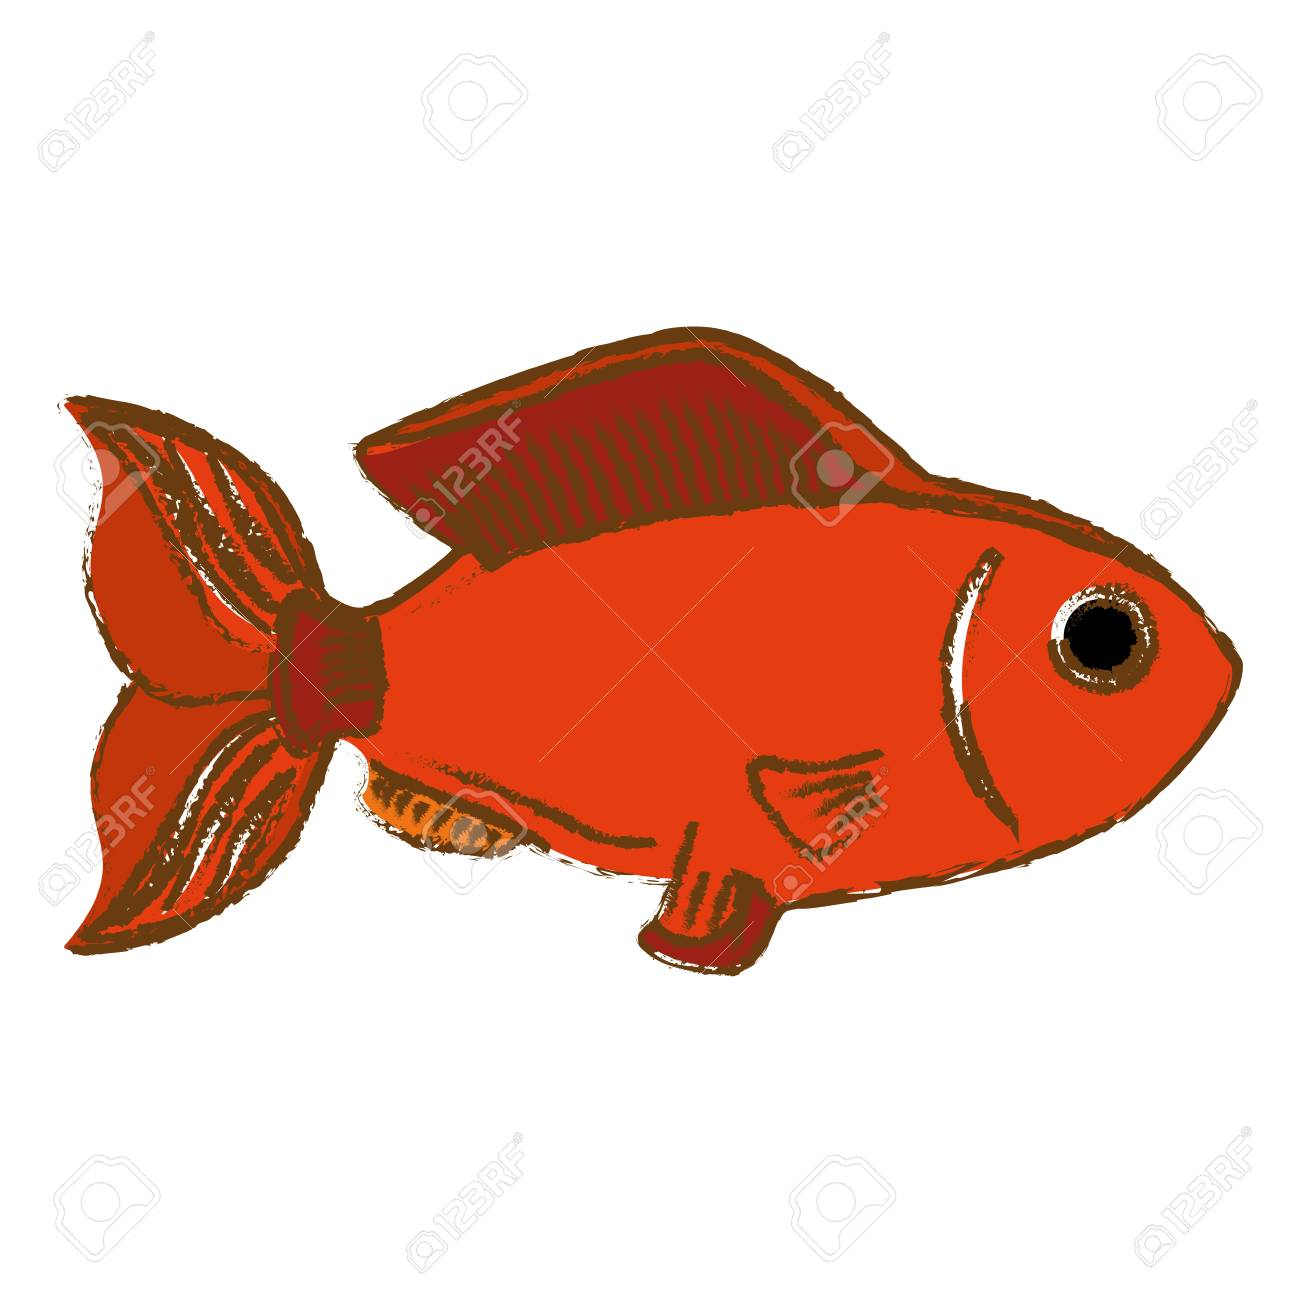 Colorful Fish Icon Image Vector Illustration Design Royalty Free ...